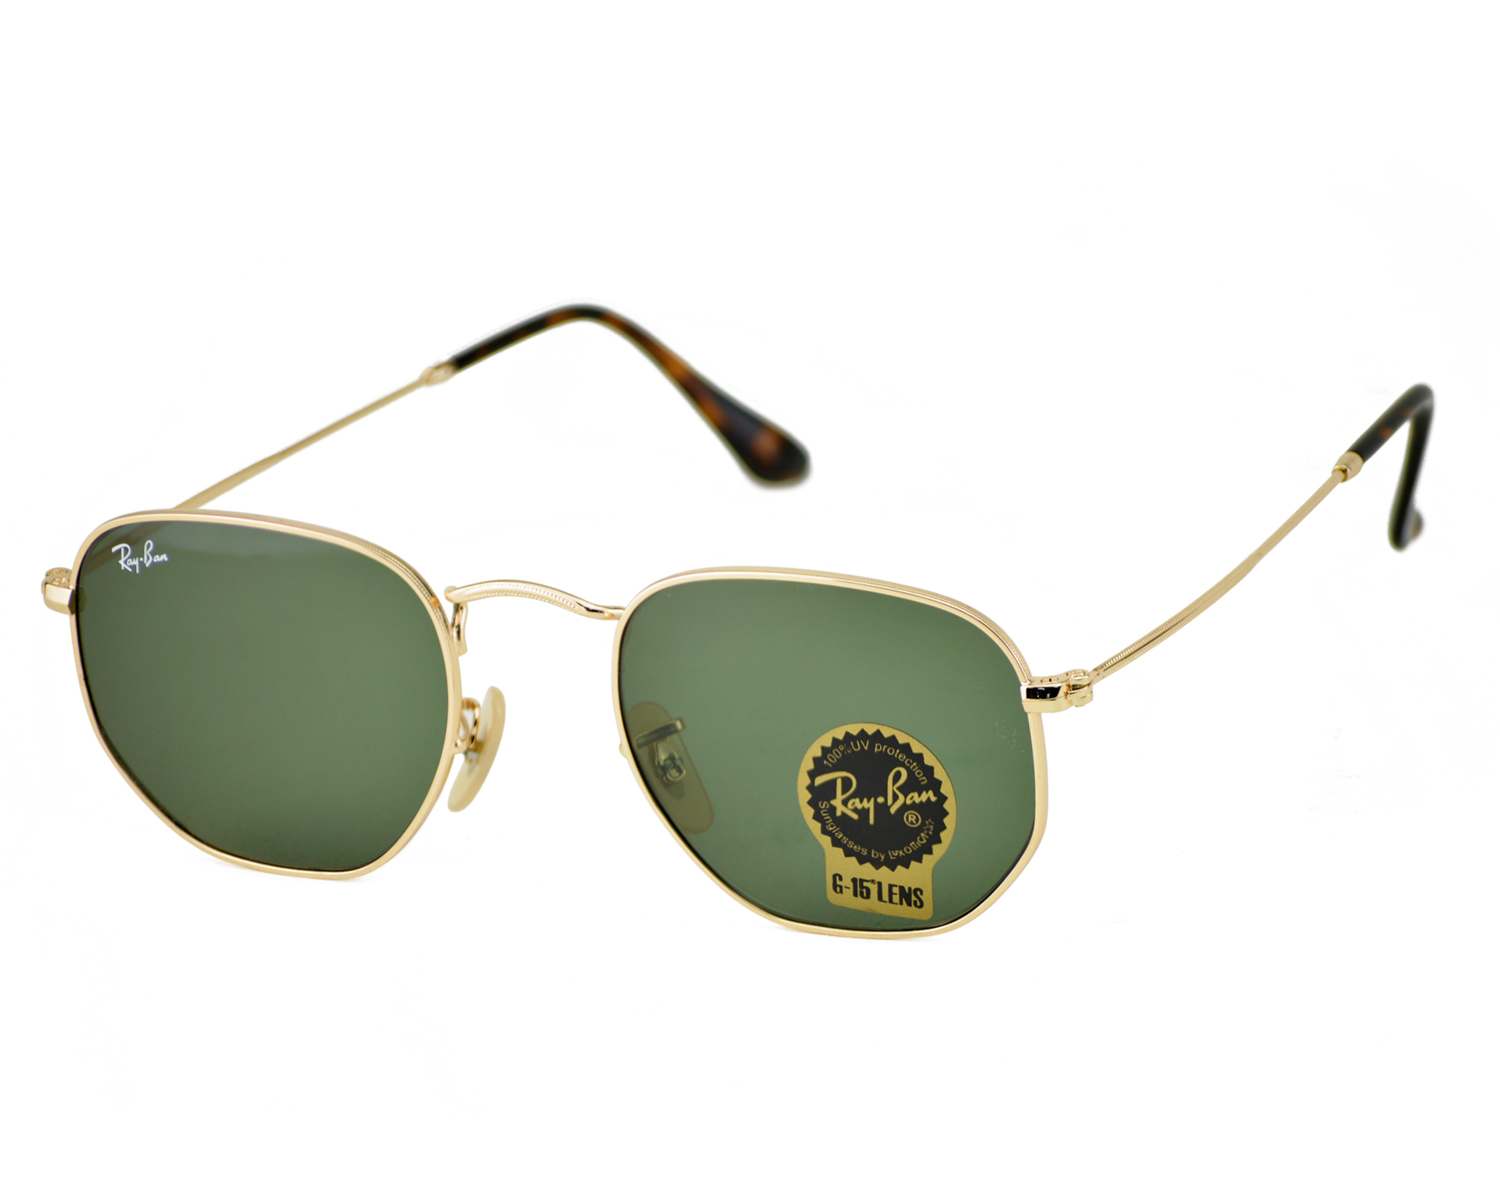 b5aa62ac0d4 Ray-Ban RB3548N Hexagonal Flat Lenses 001 Gold Frame Green Classic G-15  Lenses Unisex Sunglasses 51mm